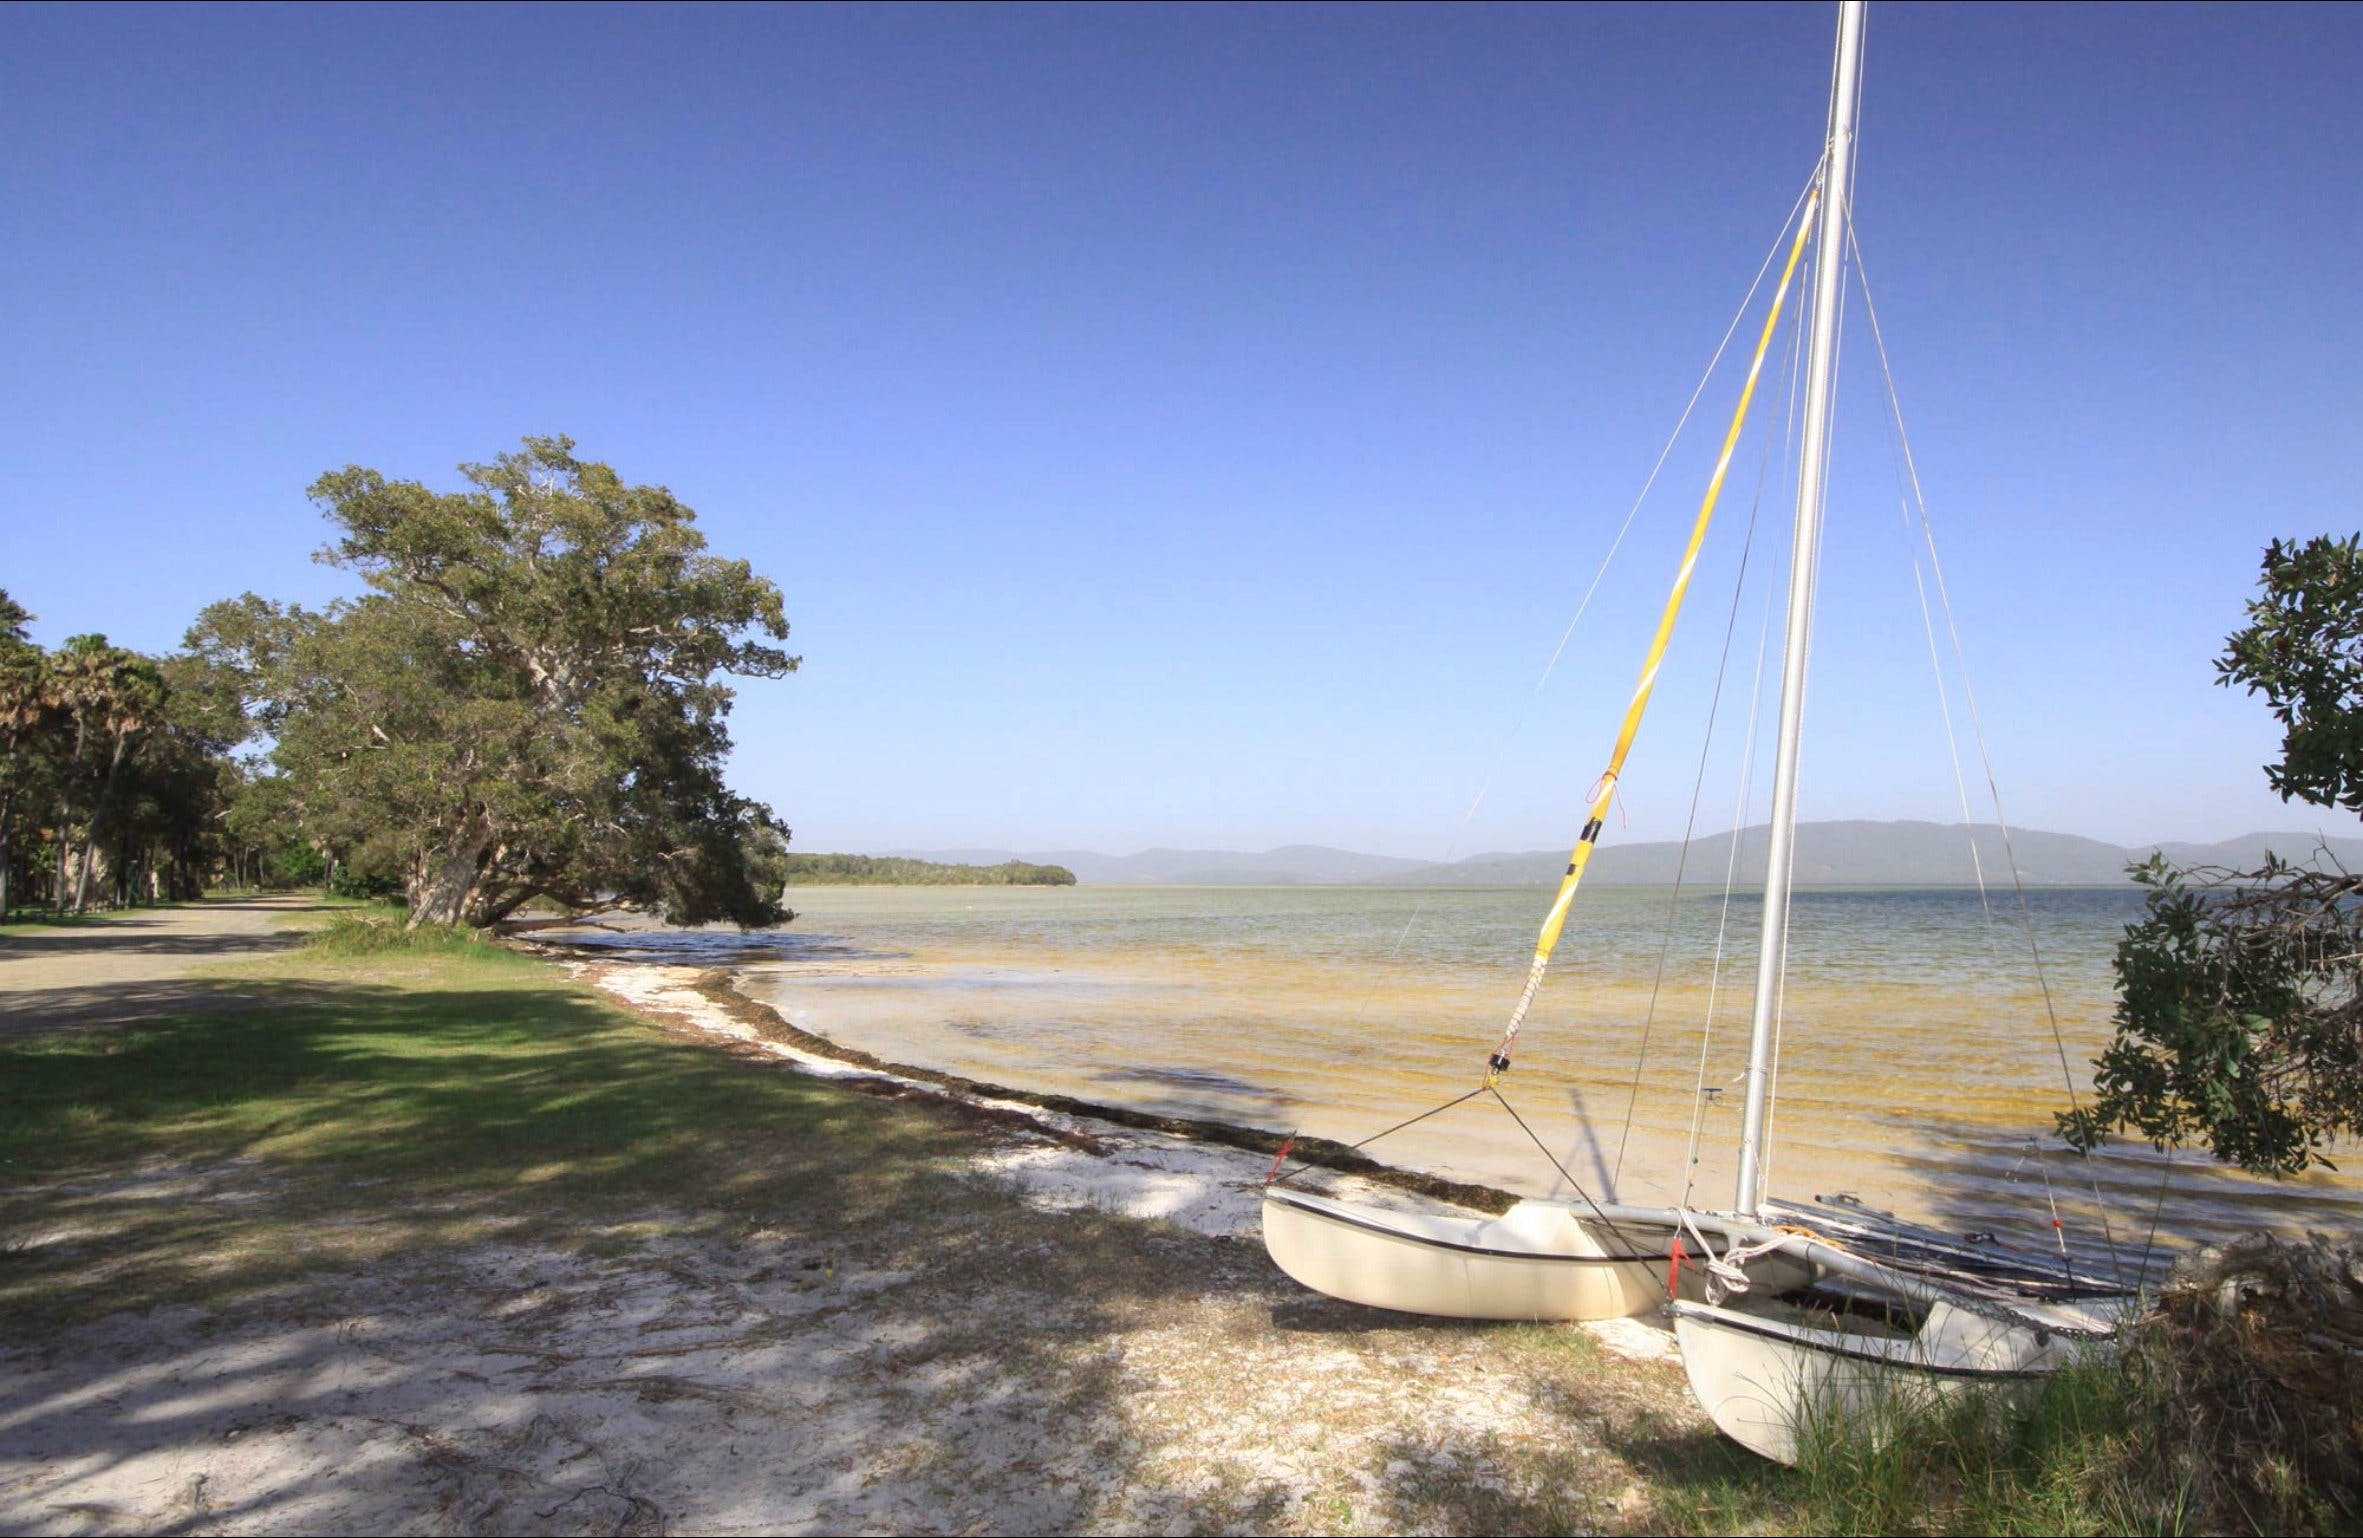 Sailing Club picnic area - Attractions